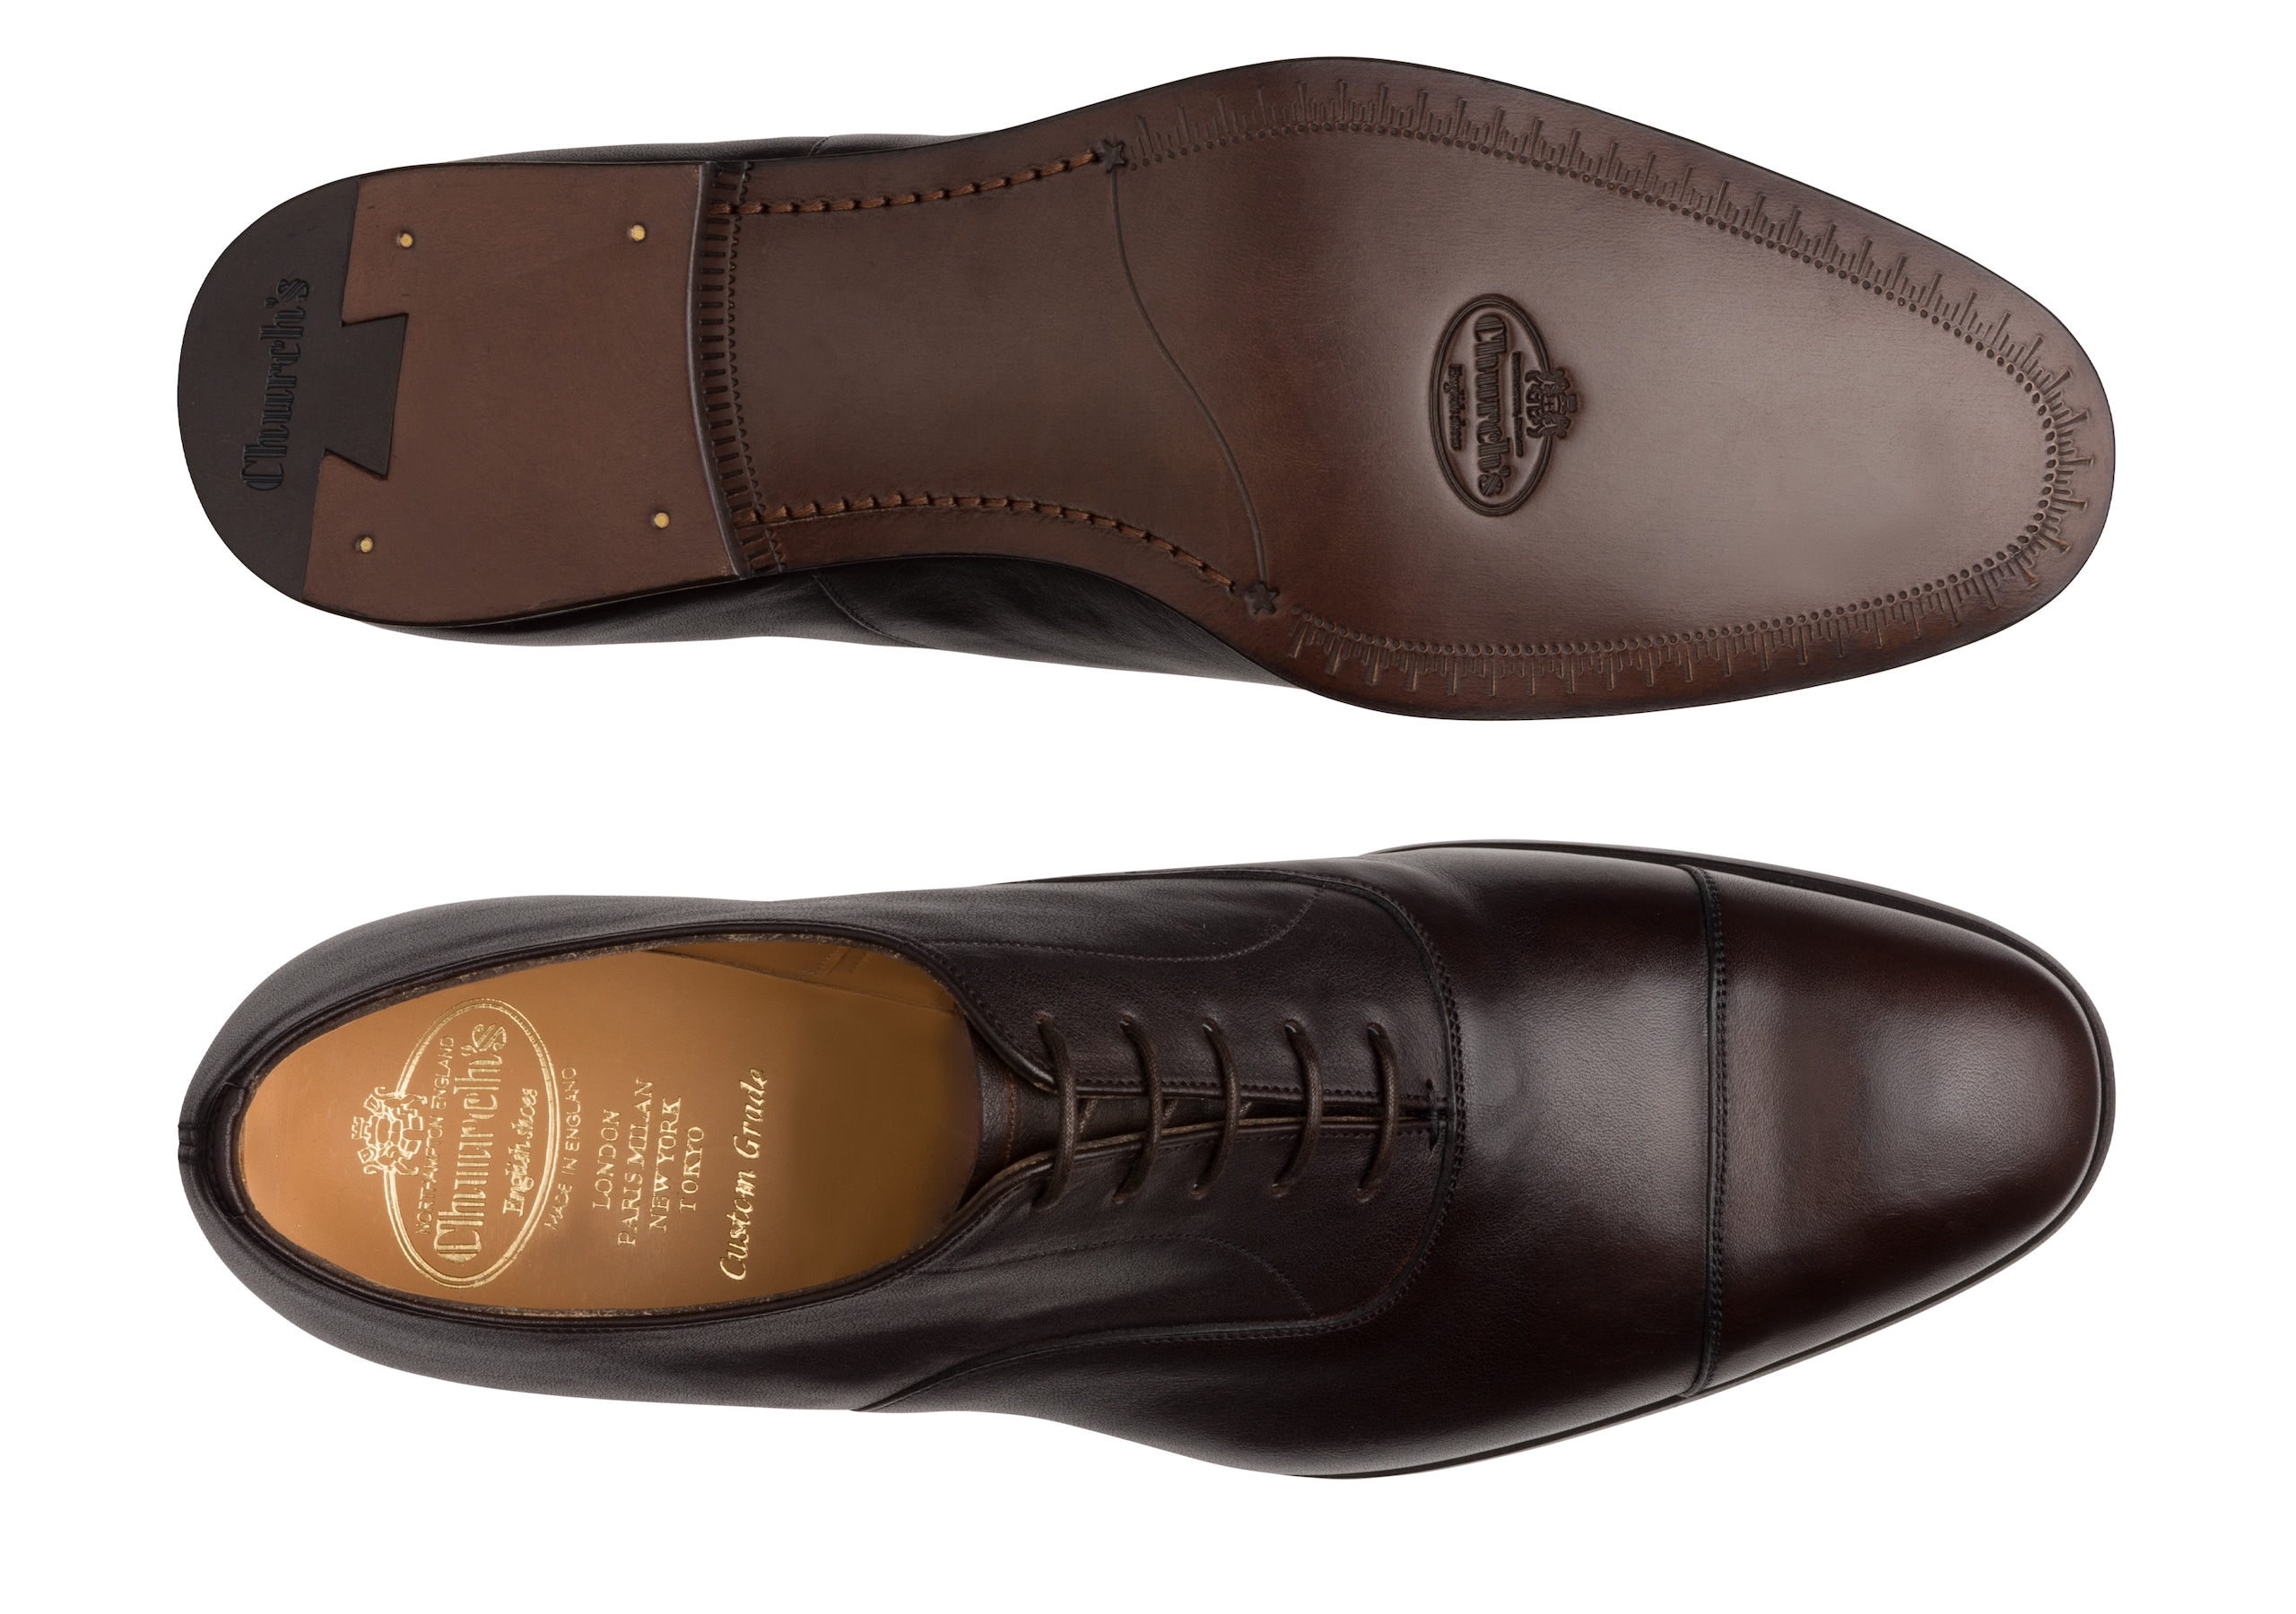 Dingley Church's Vintage Calf Leather Oxford Brown